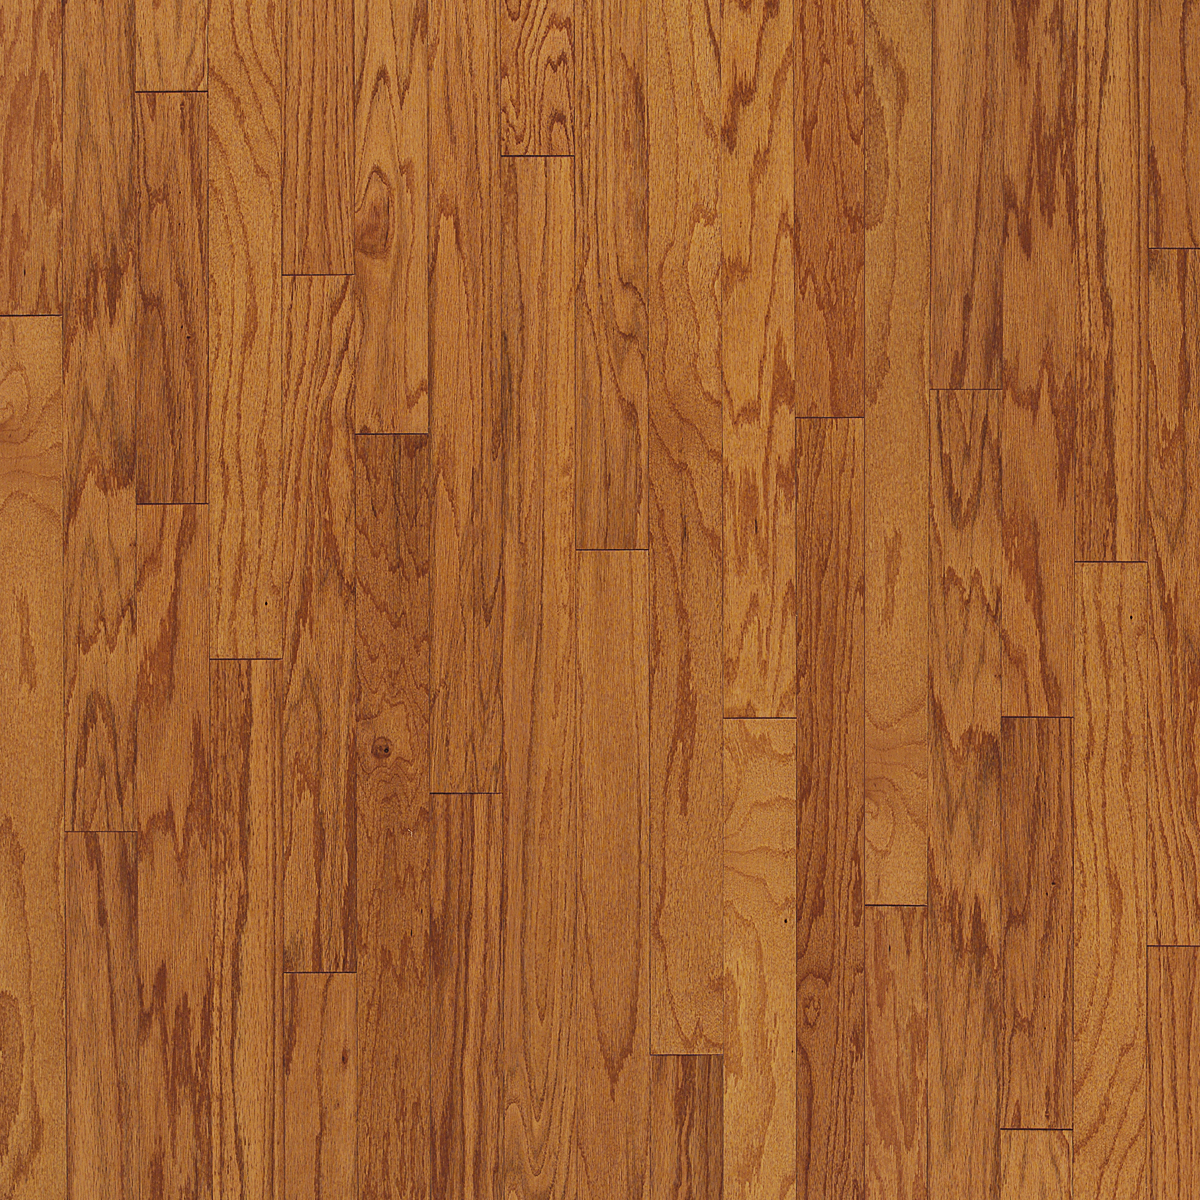 Turlington Lock&Fold Butterscotch Engineered Hardwood EAK06LGEE